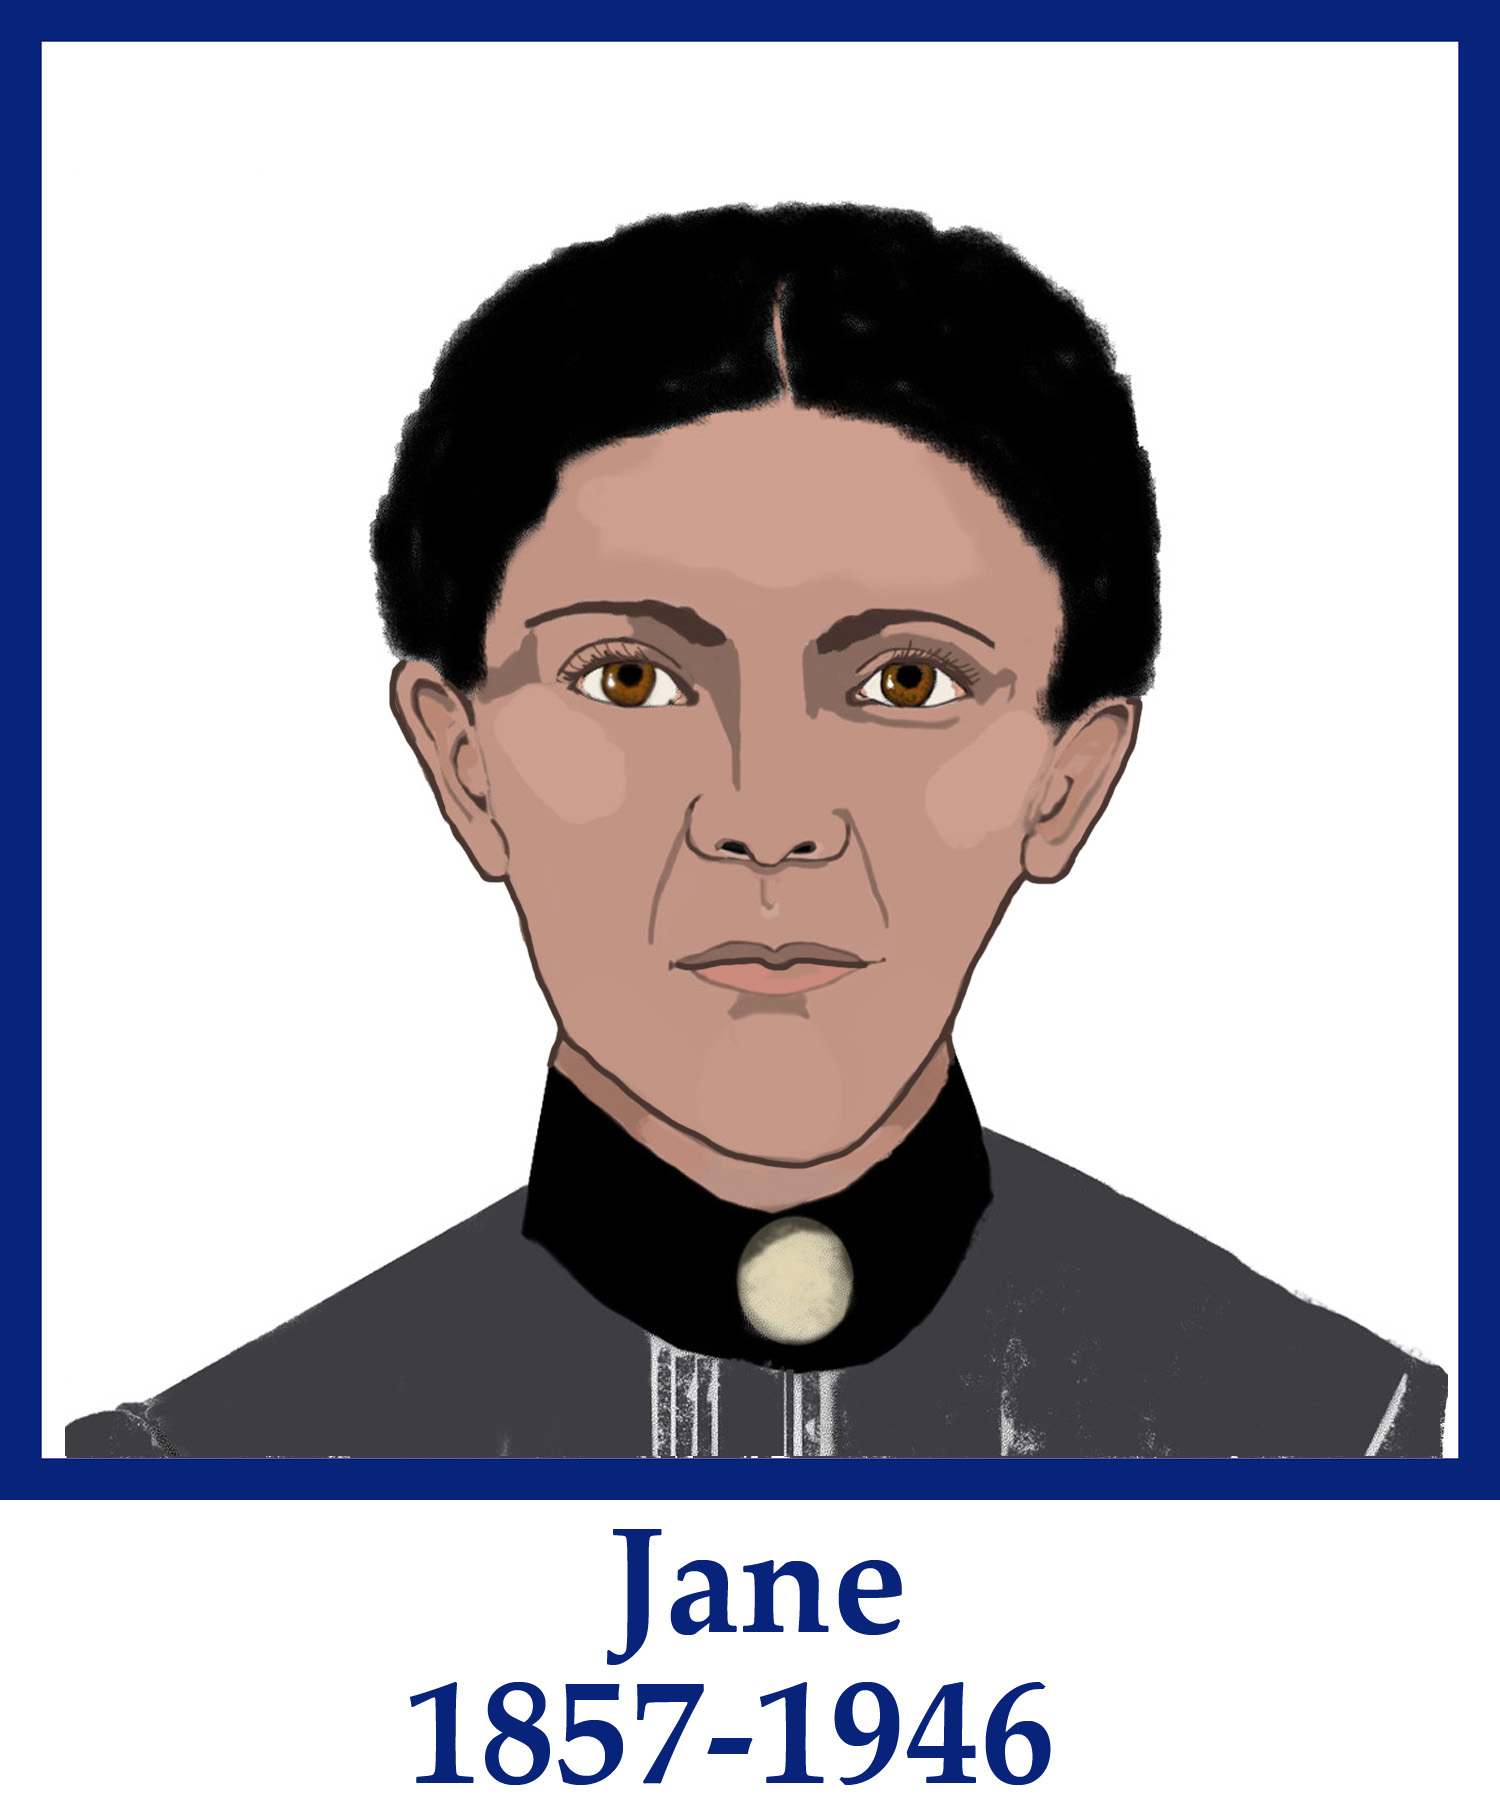 Jane cell